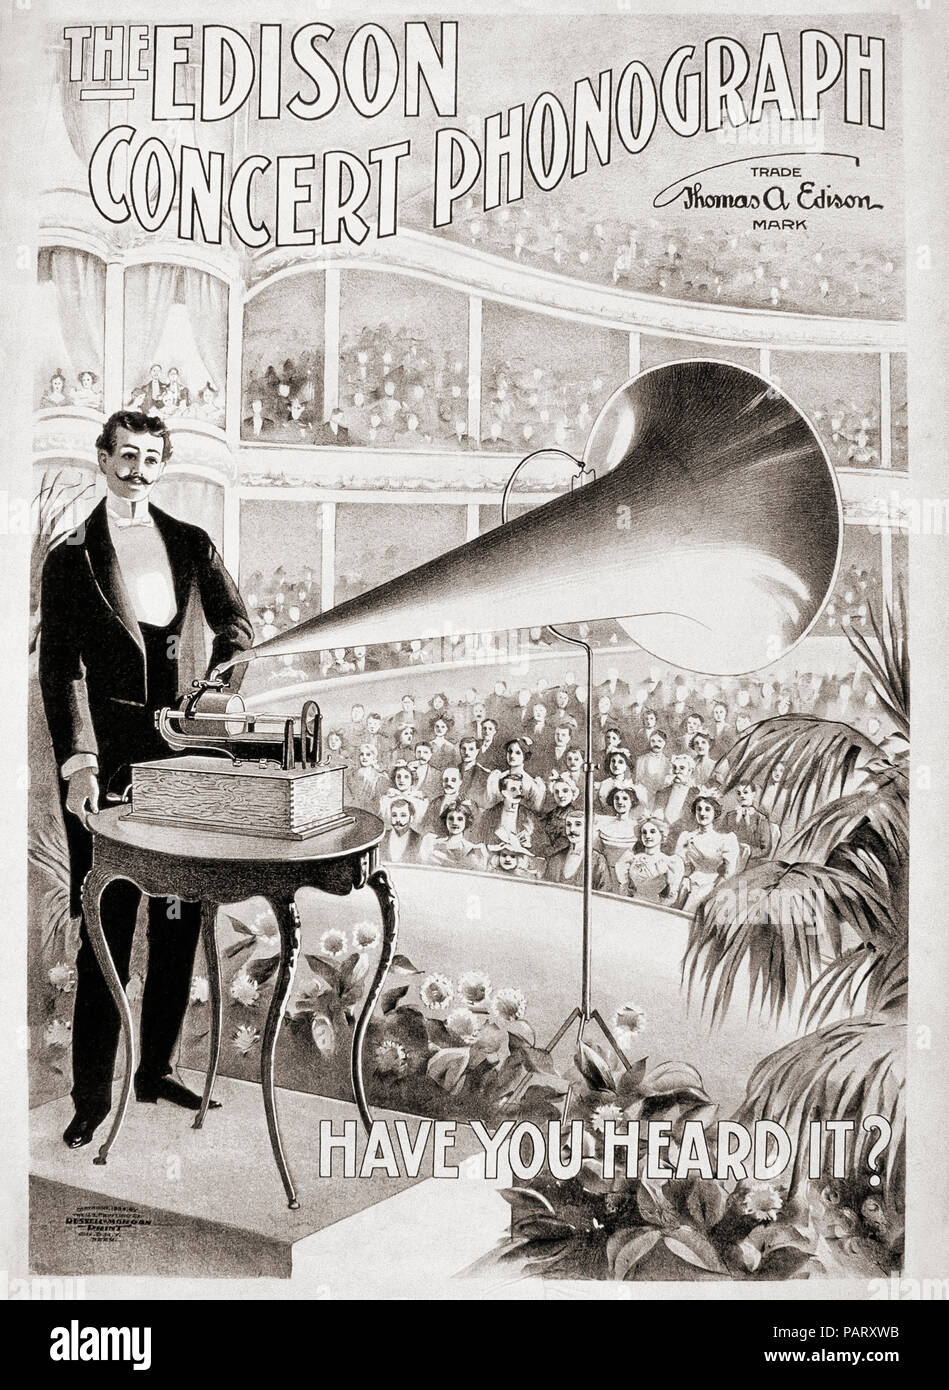 Advertisement for The Edison Concert Phonograph from 1899. - Stock Image